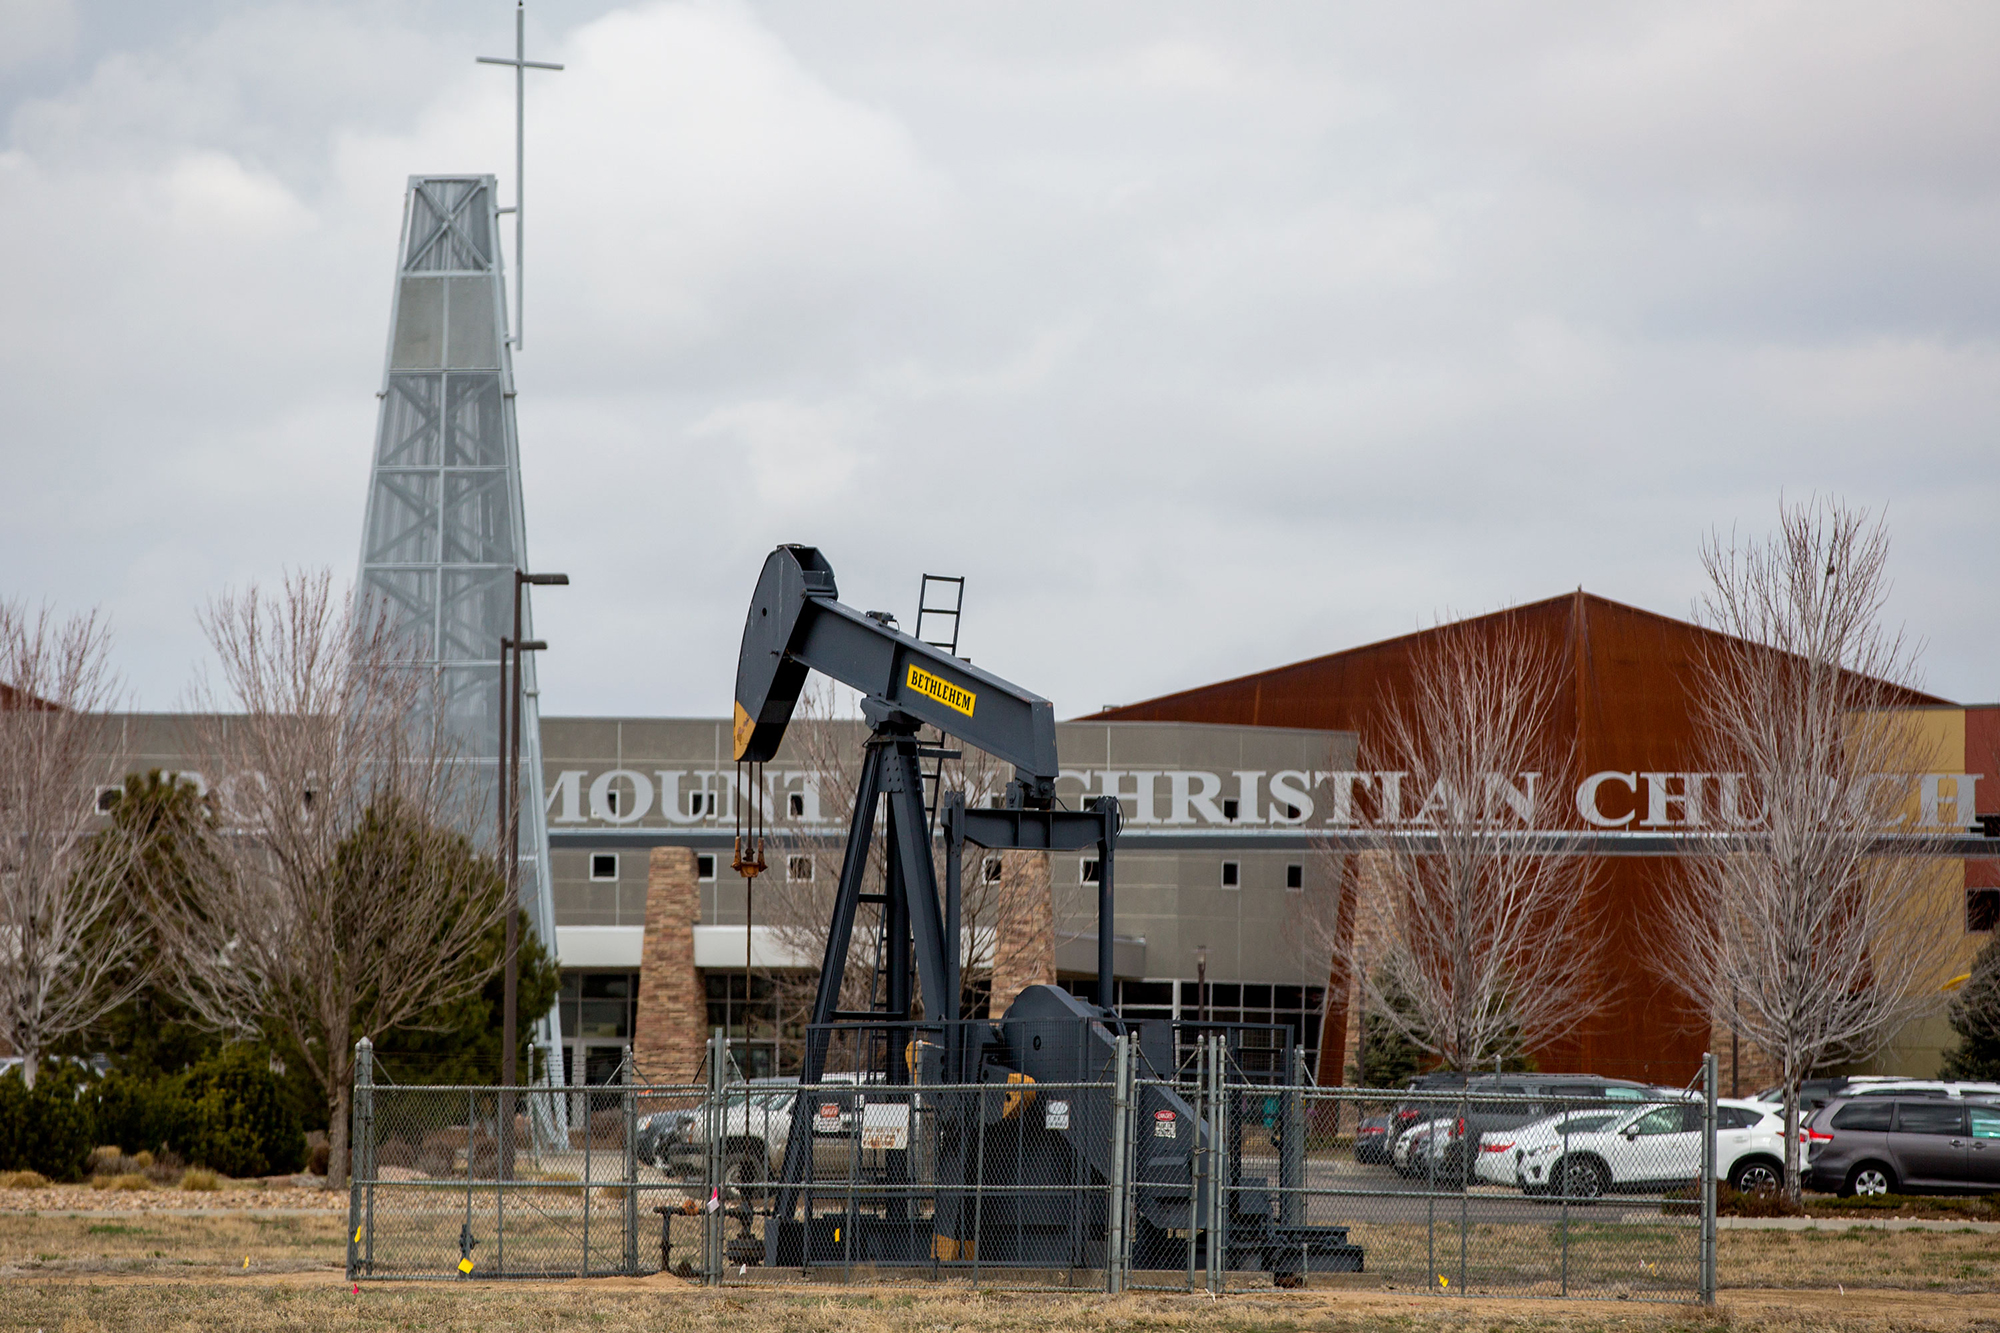 A pump jack that feeds storage tanks beside the parking lot of Rocky Mountain Christian Church in Firestone, April 2, 2019.